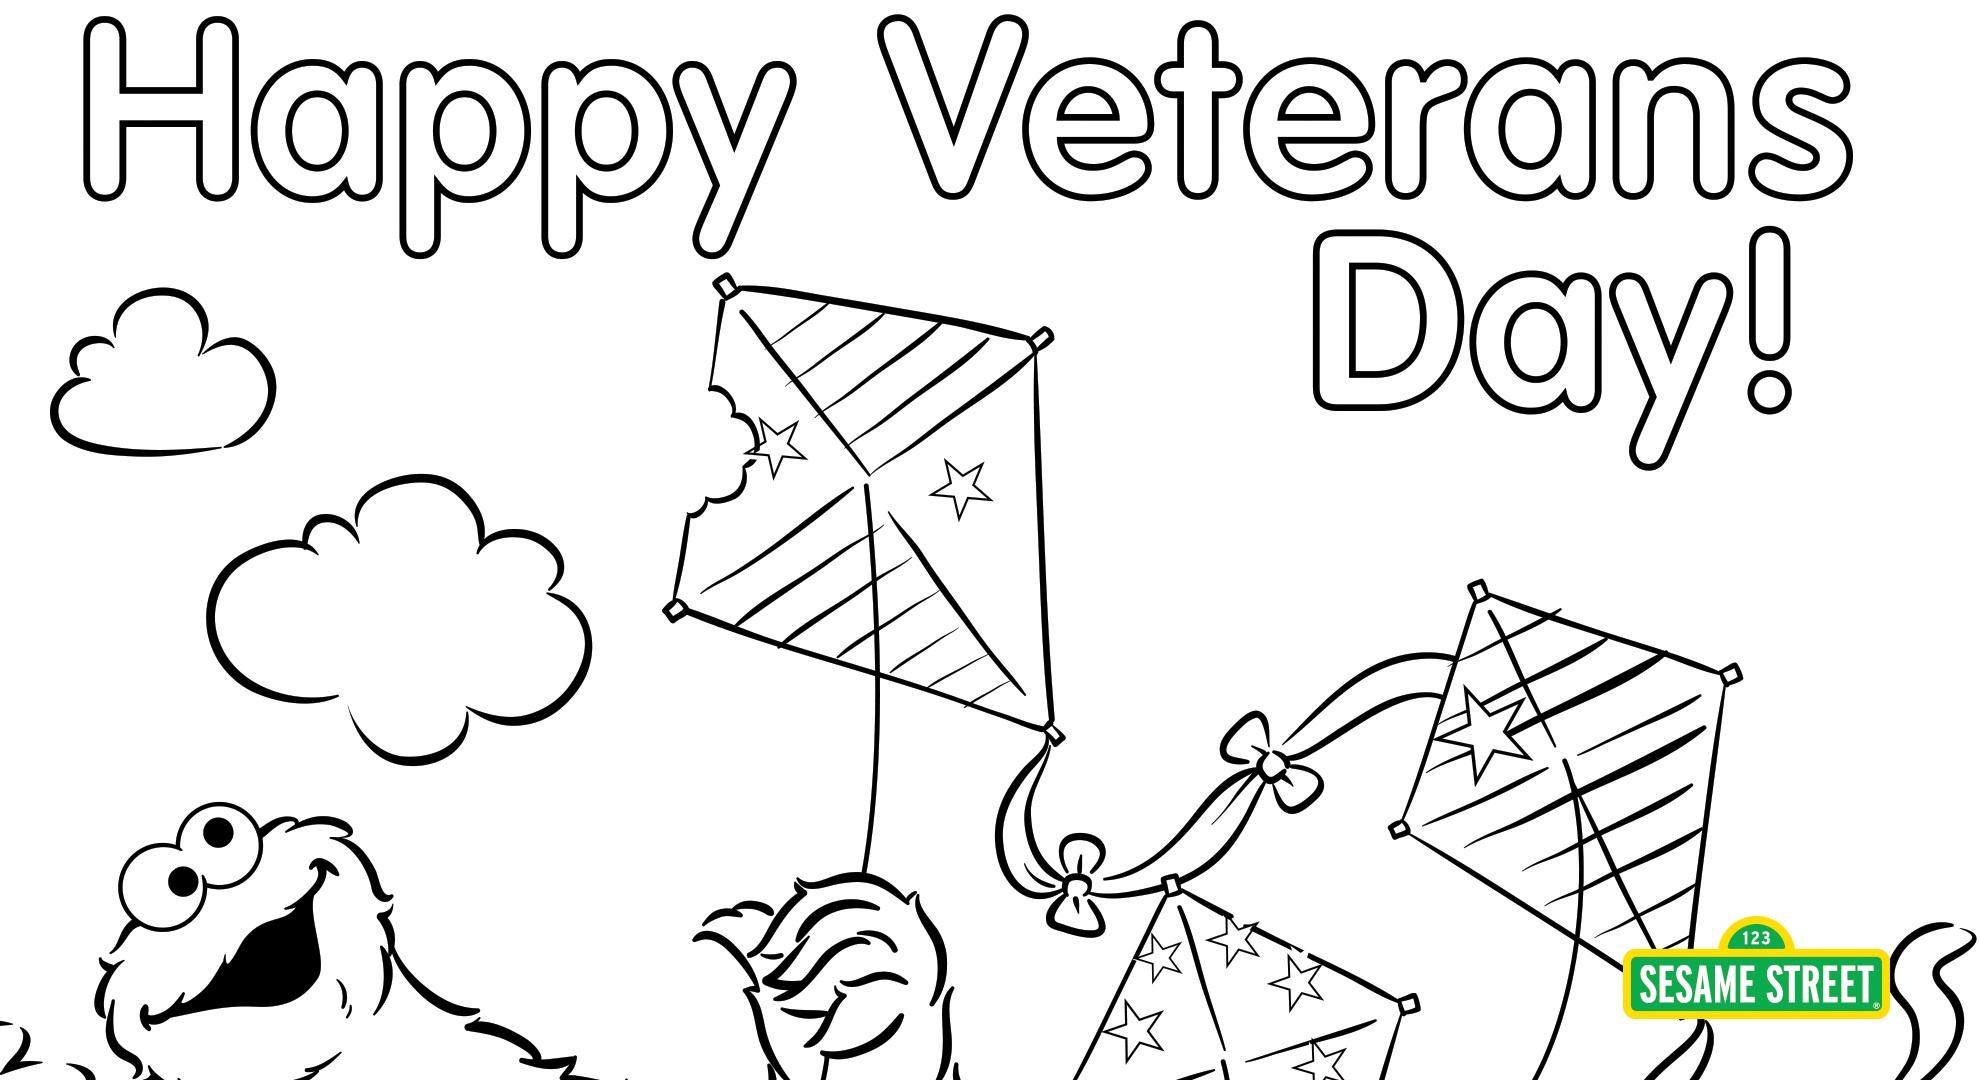 Veterans Day Coloring Page Printable